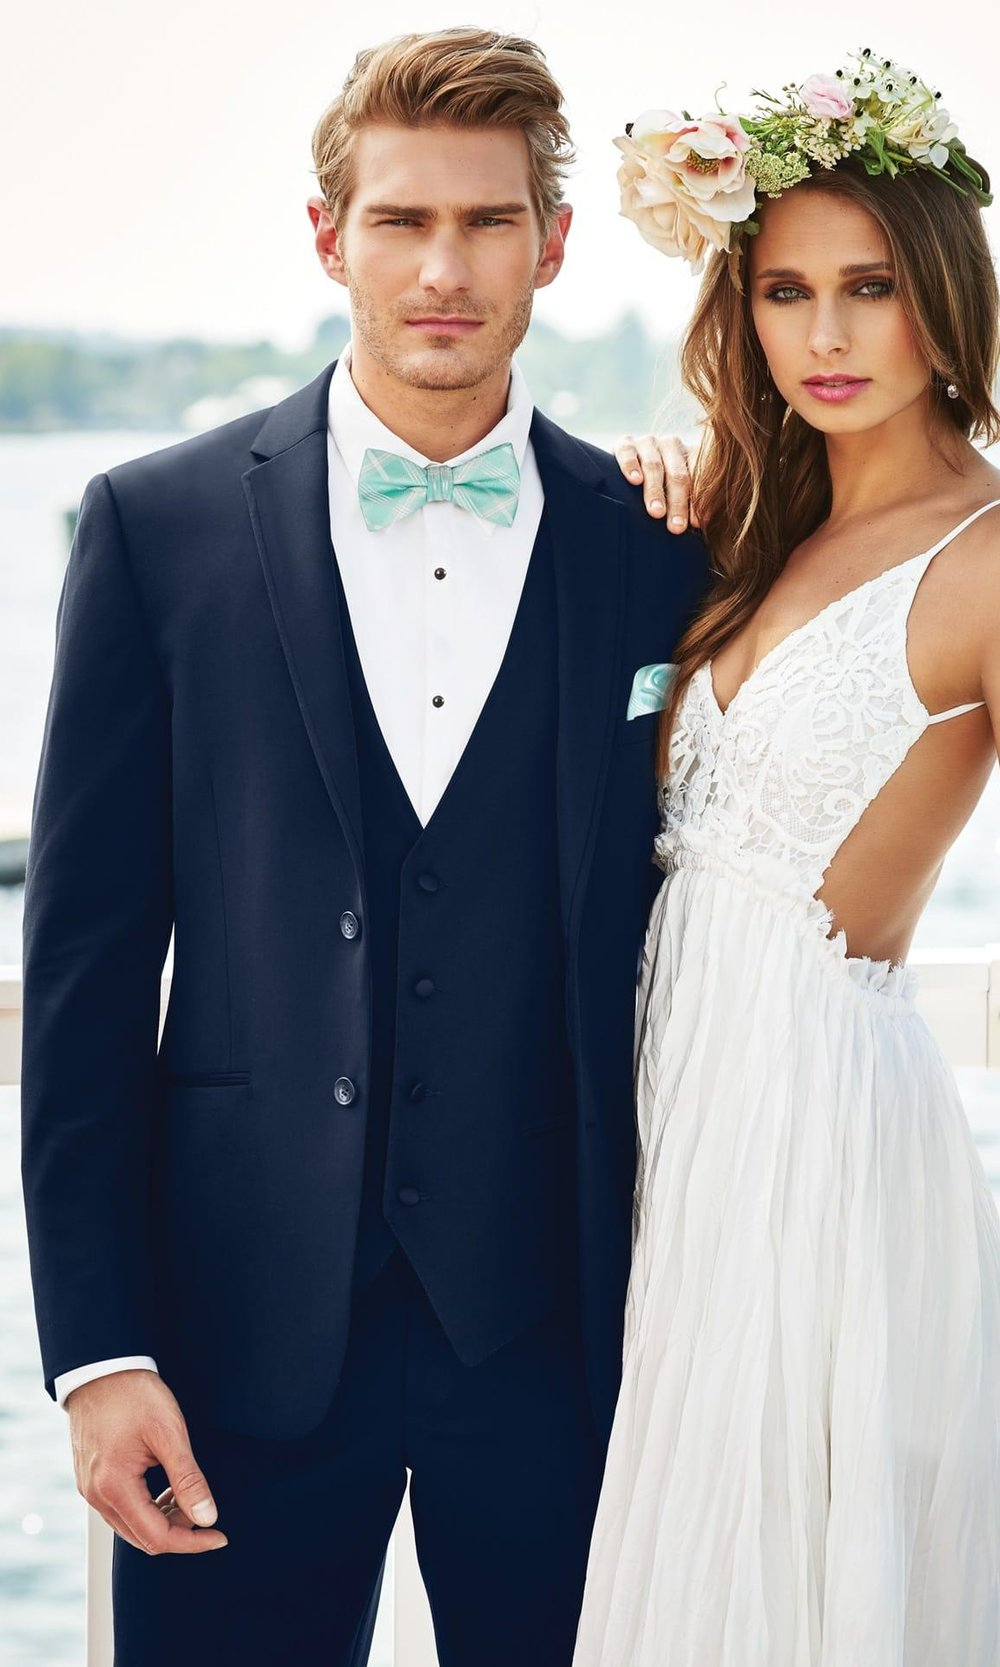 Tuxedo Rental West Lods Angeles